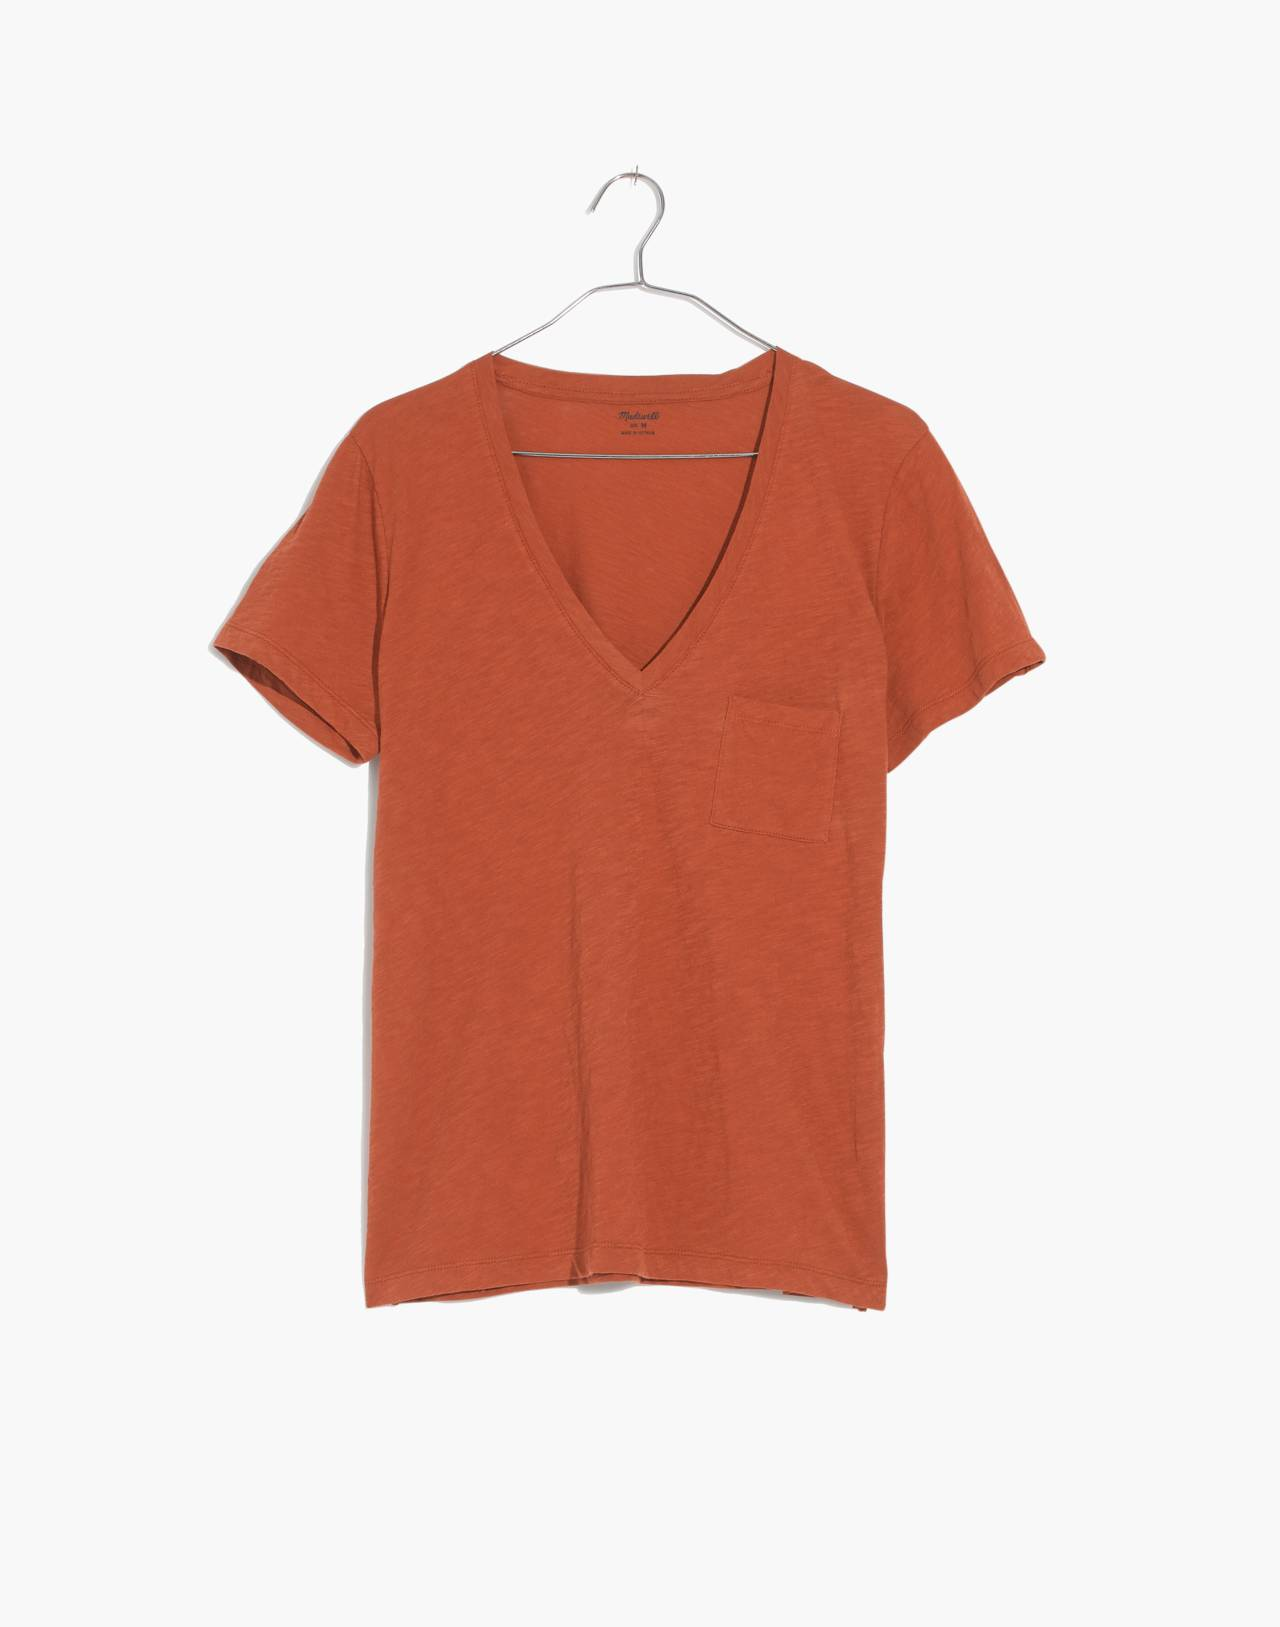 Whisper Cotton V-Neck Pocket Tee in burnt clay image 4